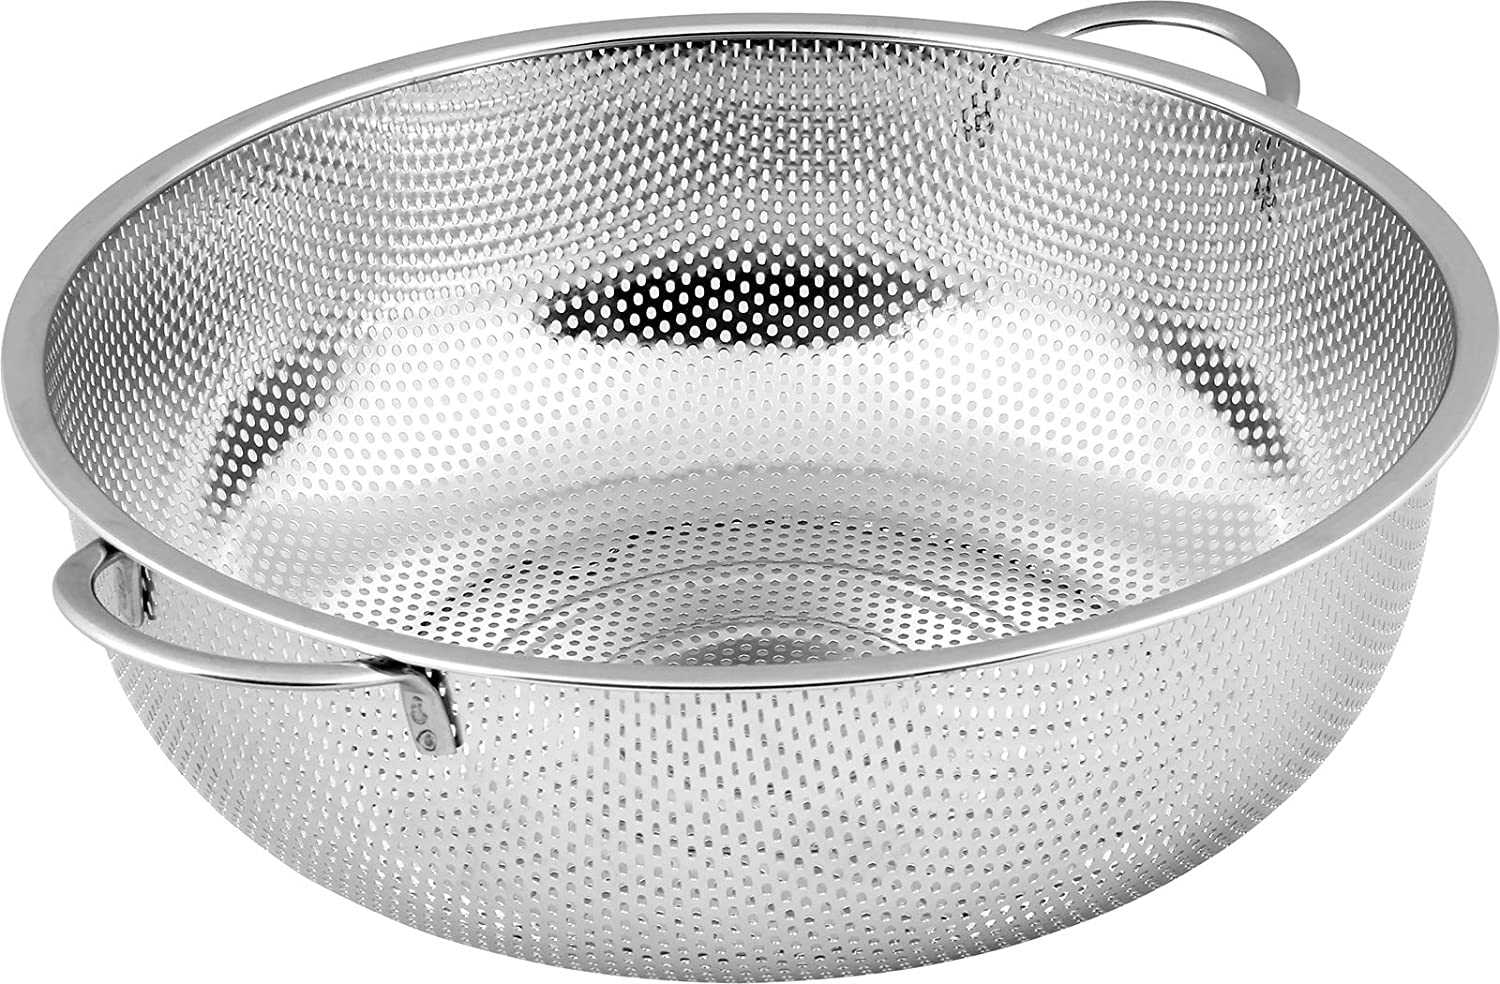 TTCPUYSA The Micro Kitchen Colander Kitchen Tool Strainer Sieve,Portable Micro Colander Can Drainer Food,for Cans of Various Sizes Gray